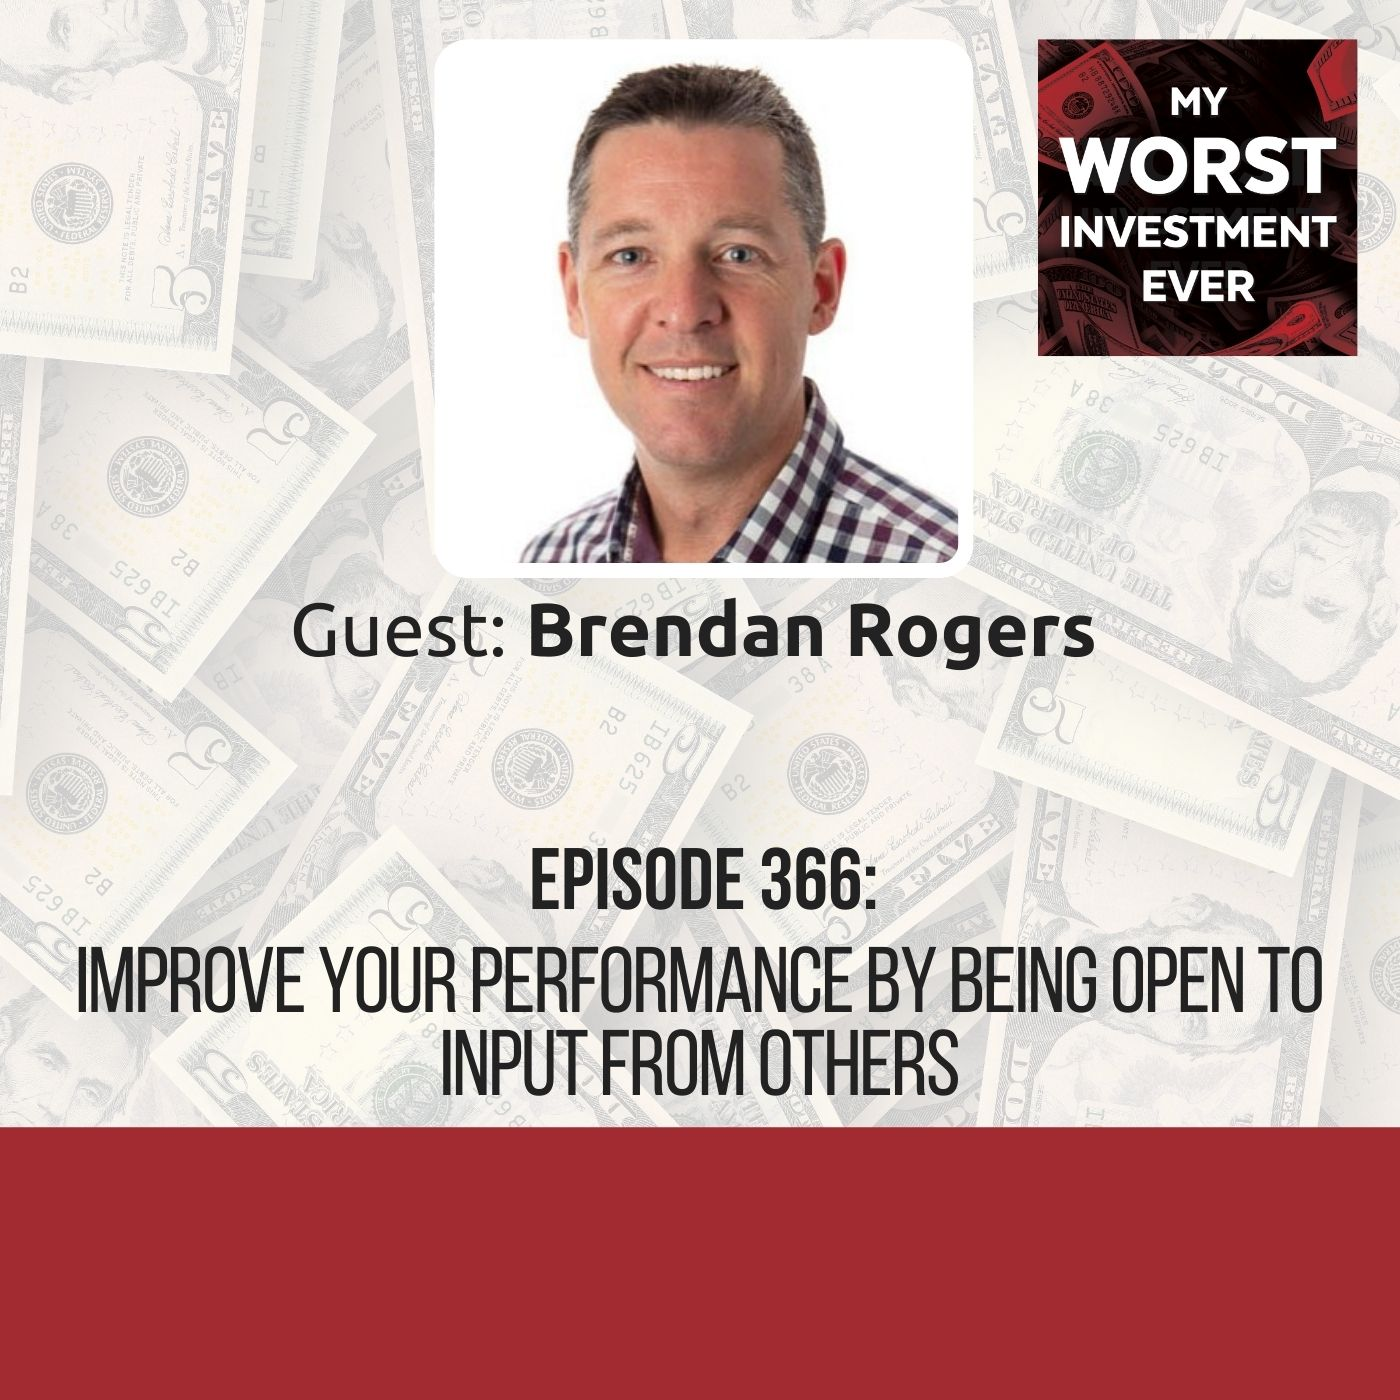 Brendan Rogers – Improve Your Performance by Being Open to Input From Others